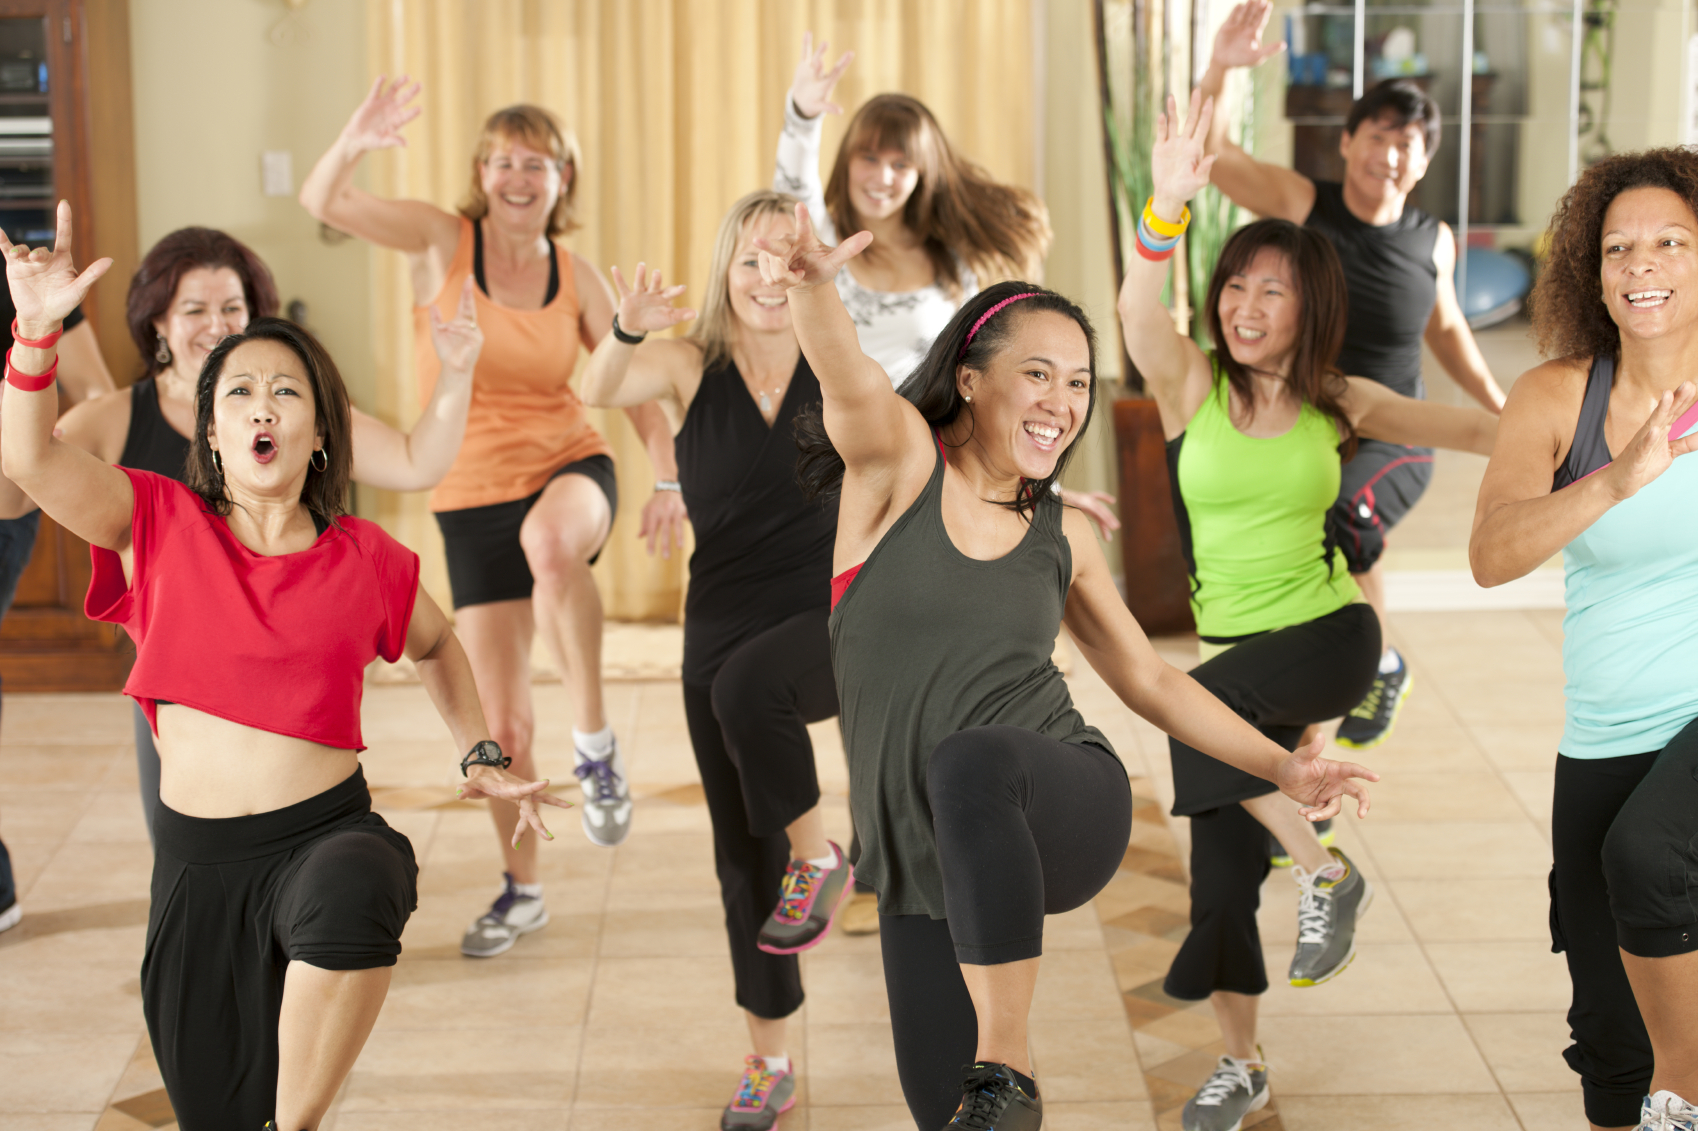 Nehmen Sie an Zumba Dance Classes For Fitness teil